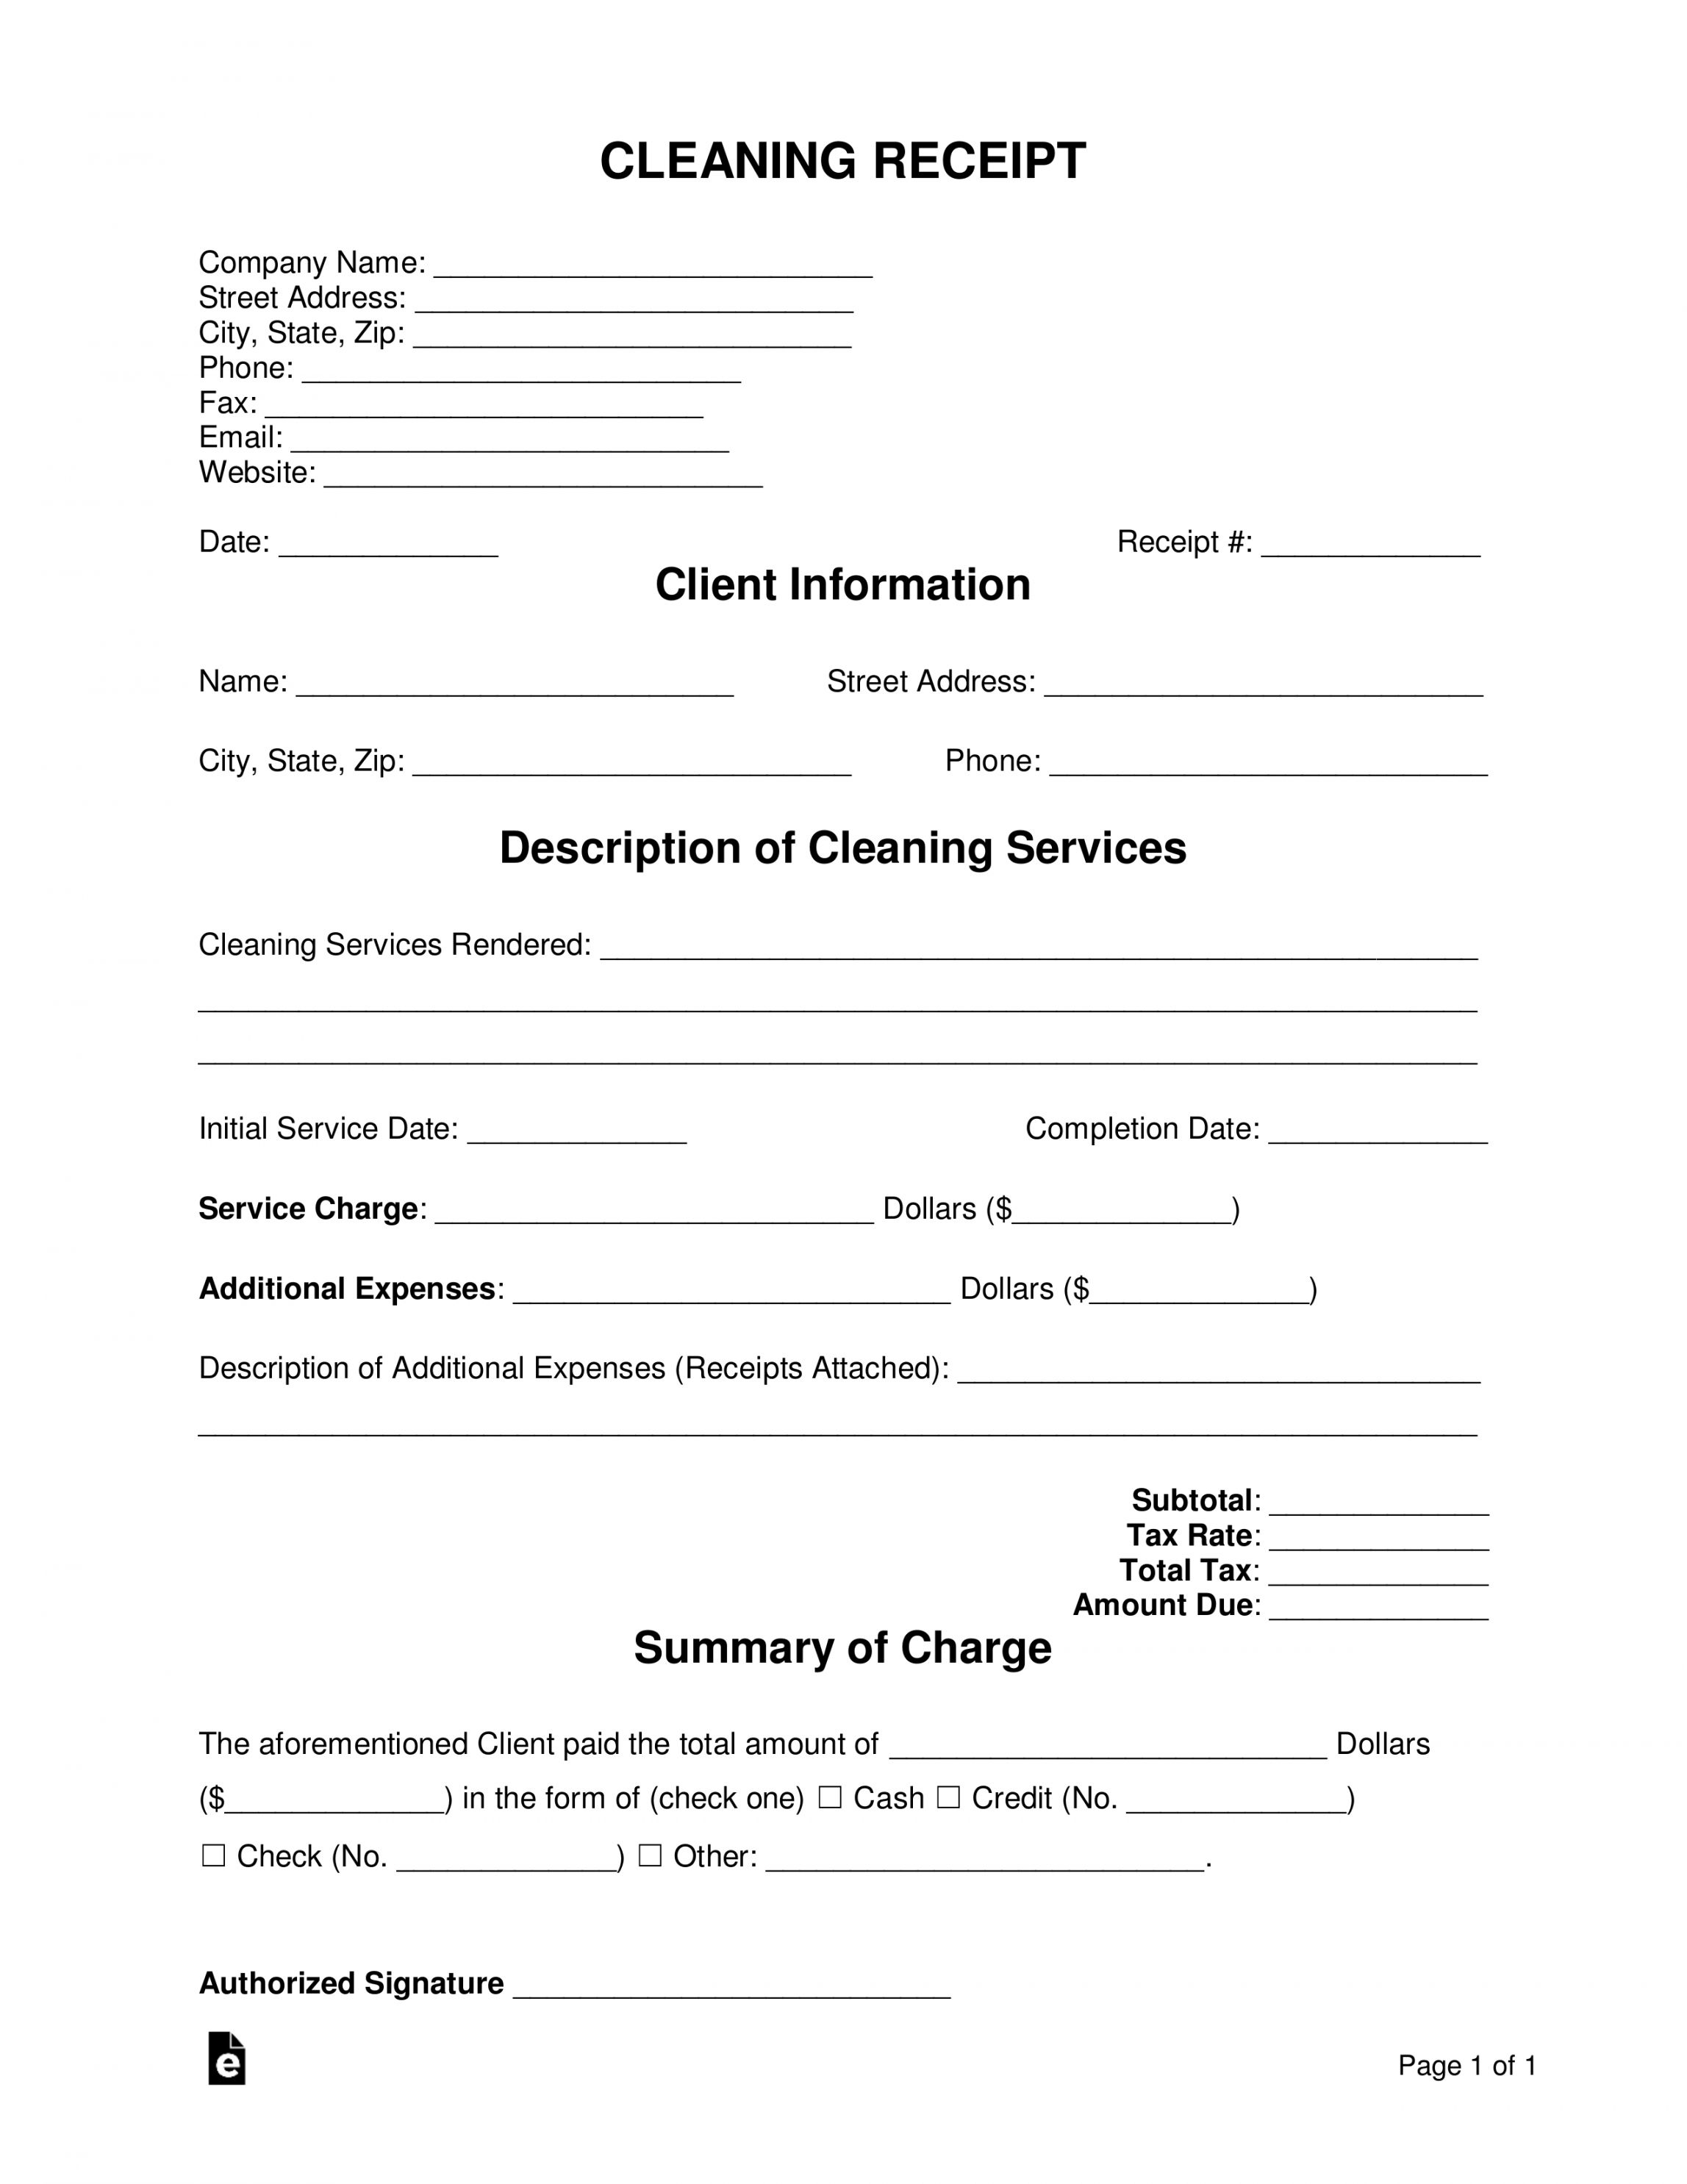 Get our free house cleaning receipt template in 2020